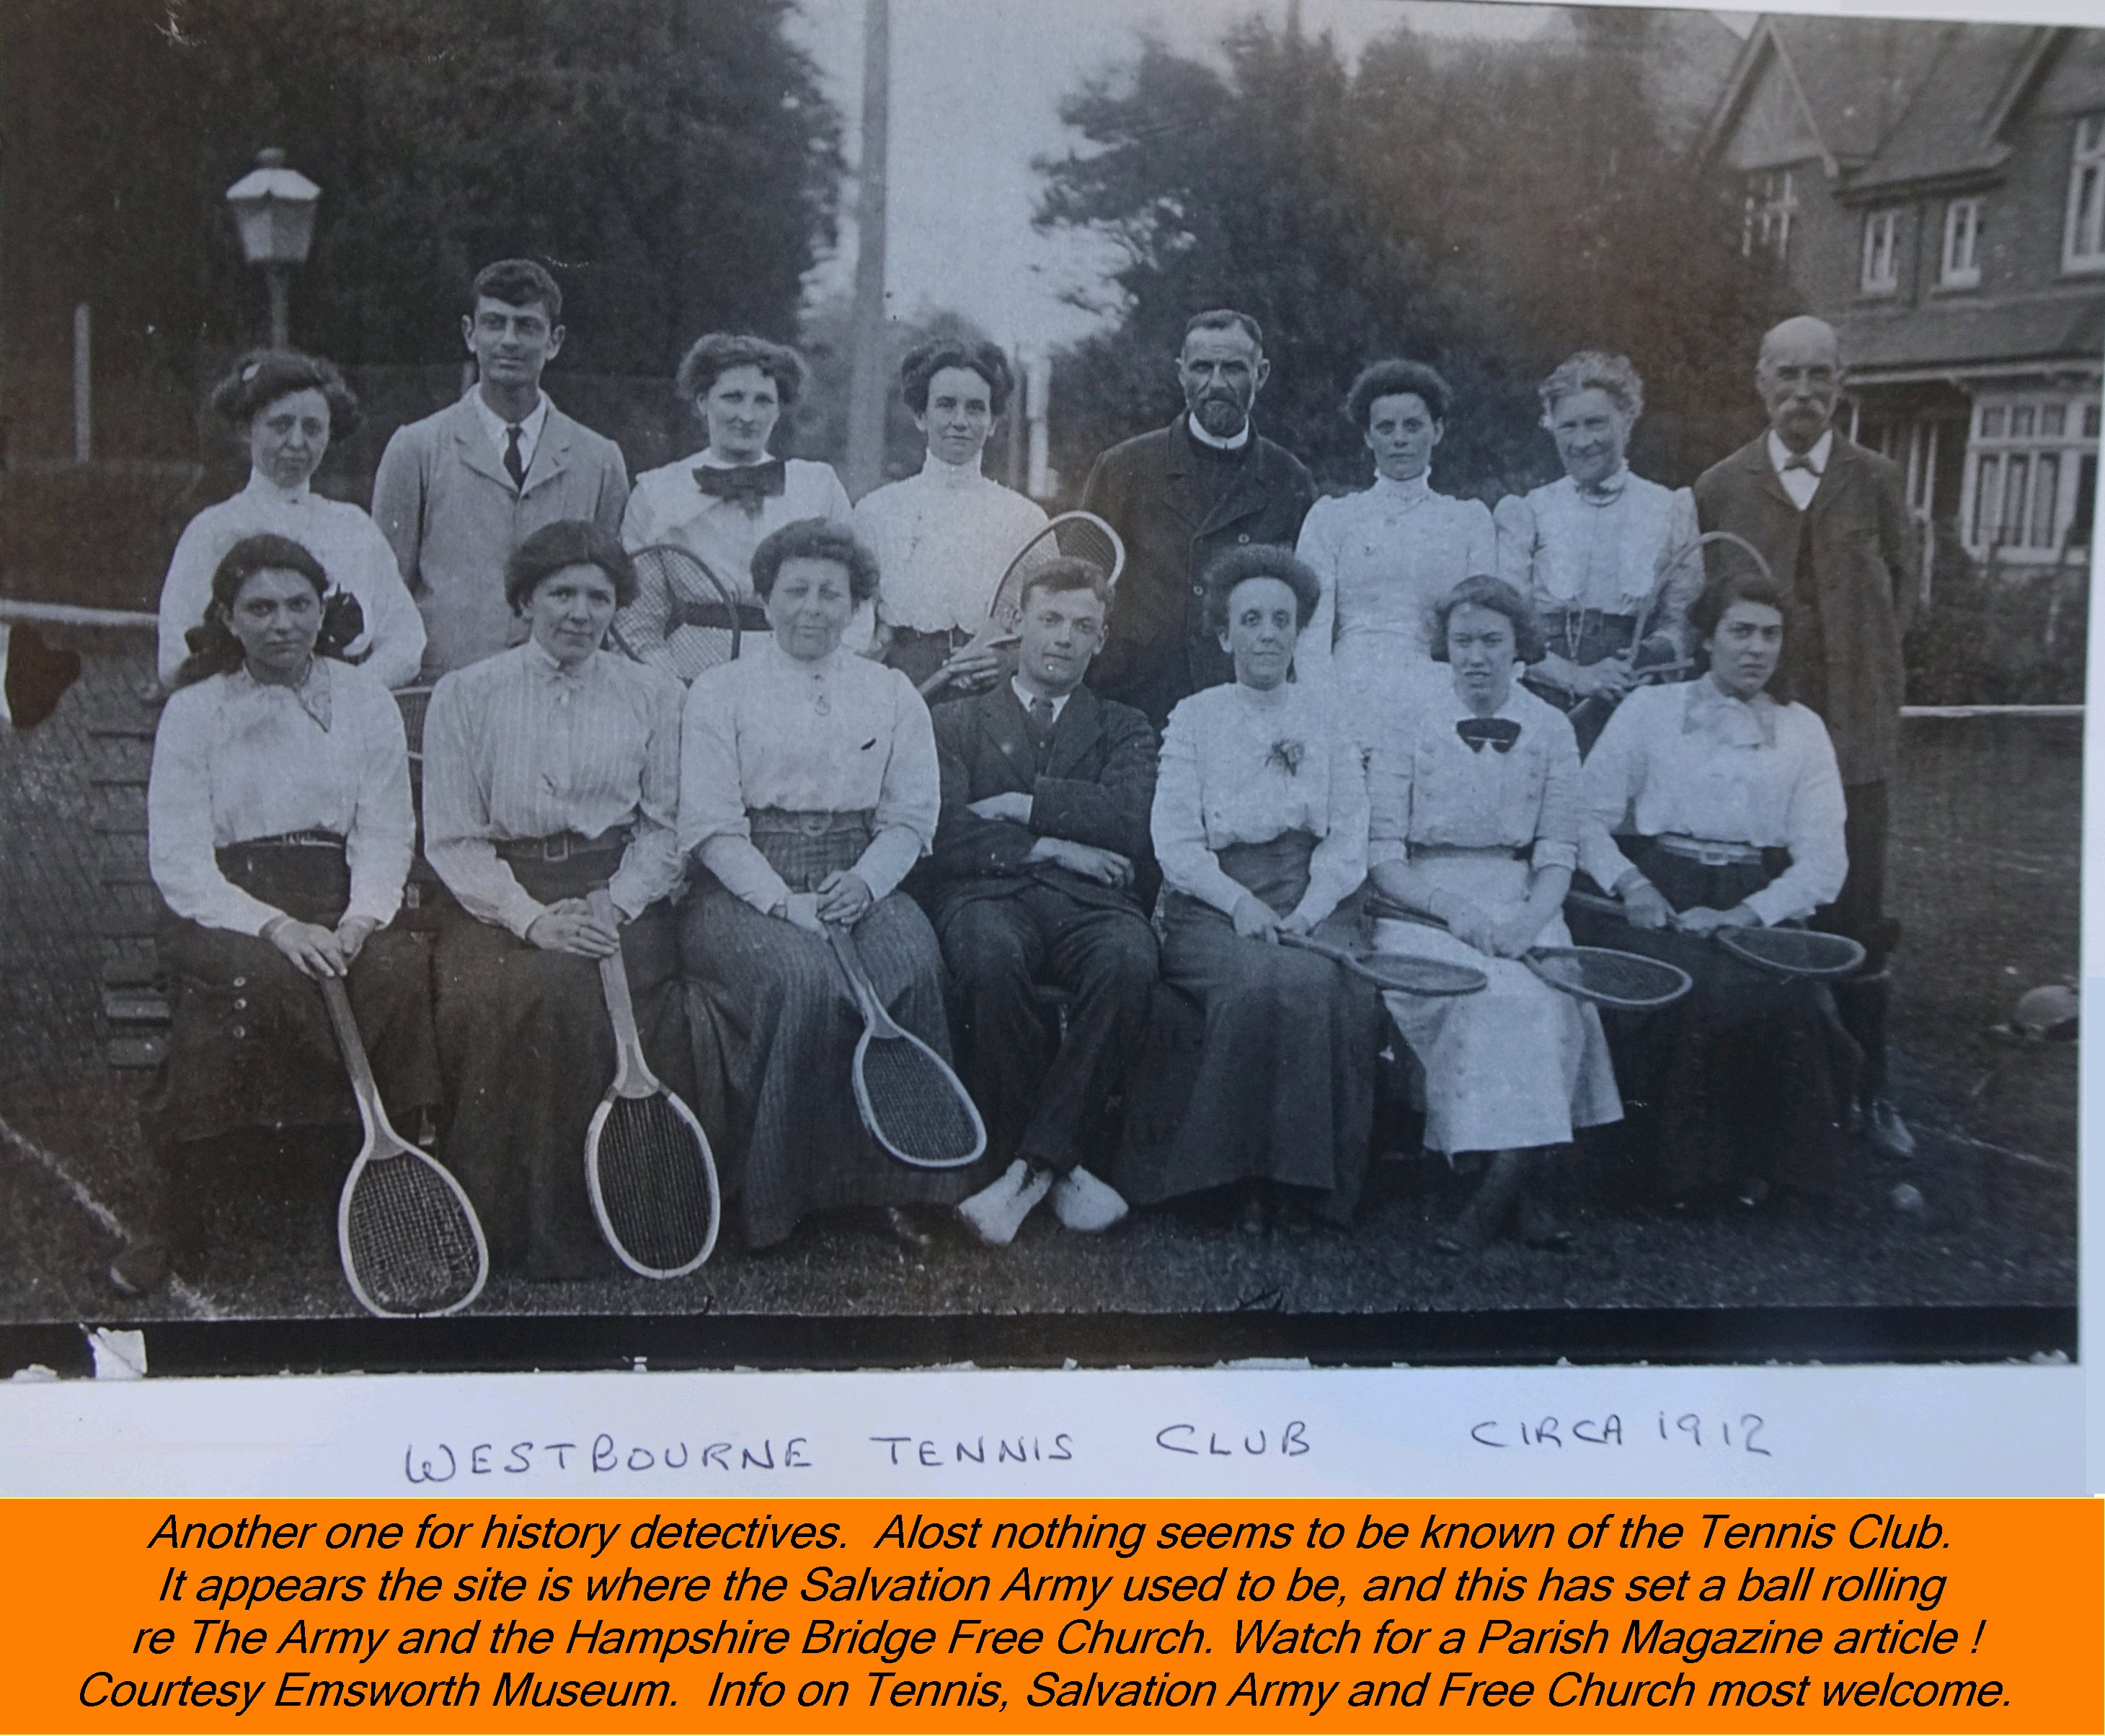 WESTBOURNE HISTORY PHOTO, TENNIS CLUB, 1912, SALVATION ARMY, FREE CHURCH